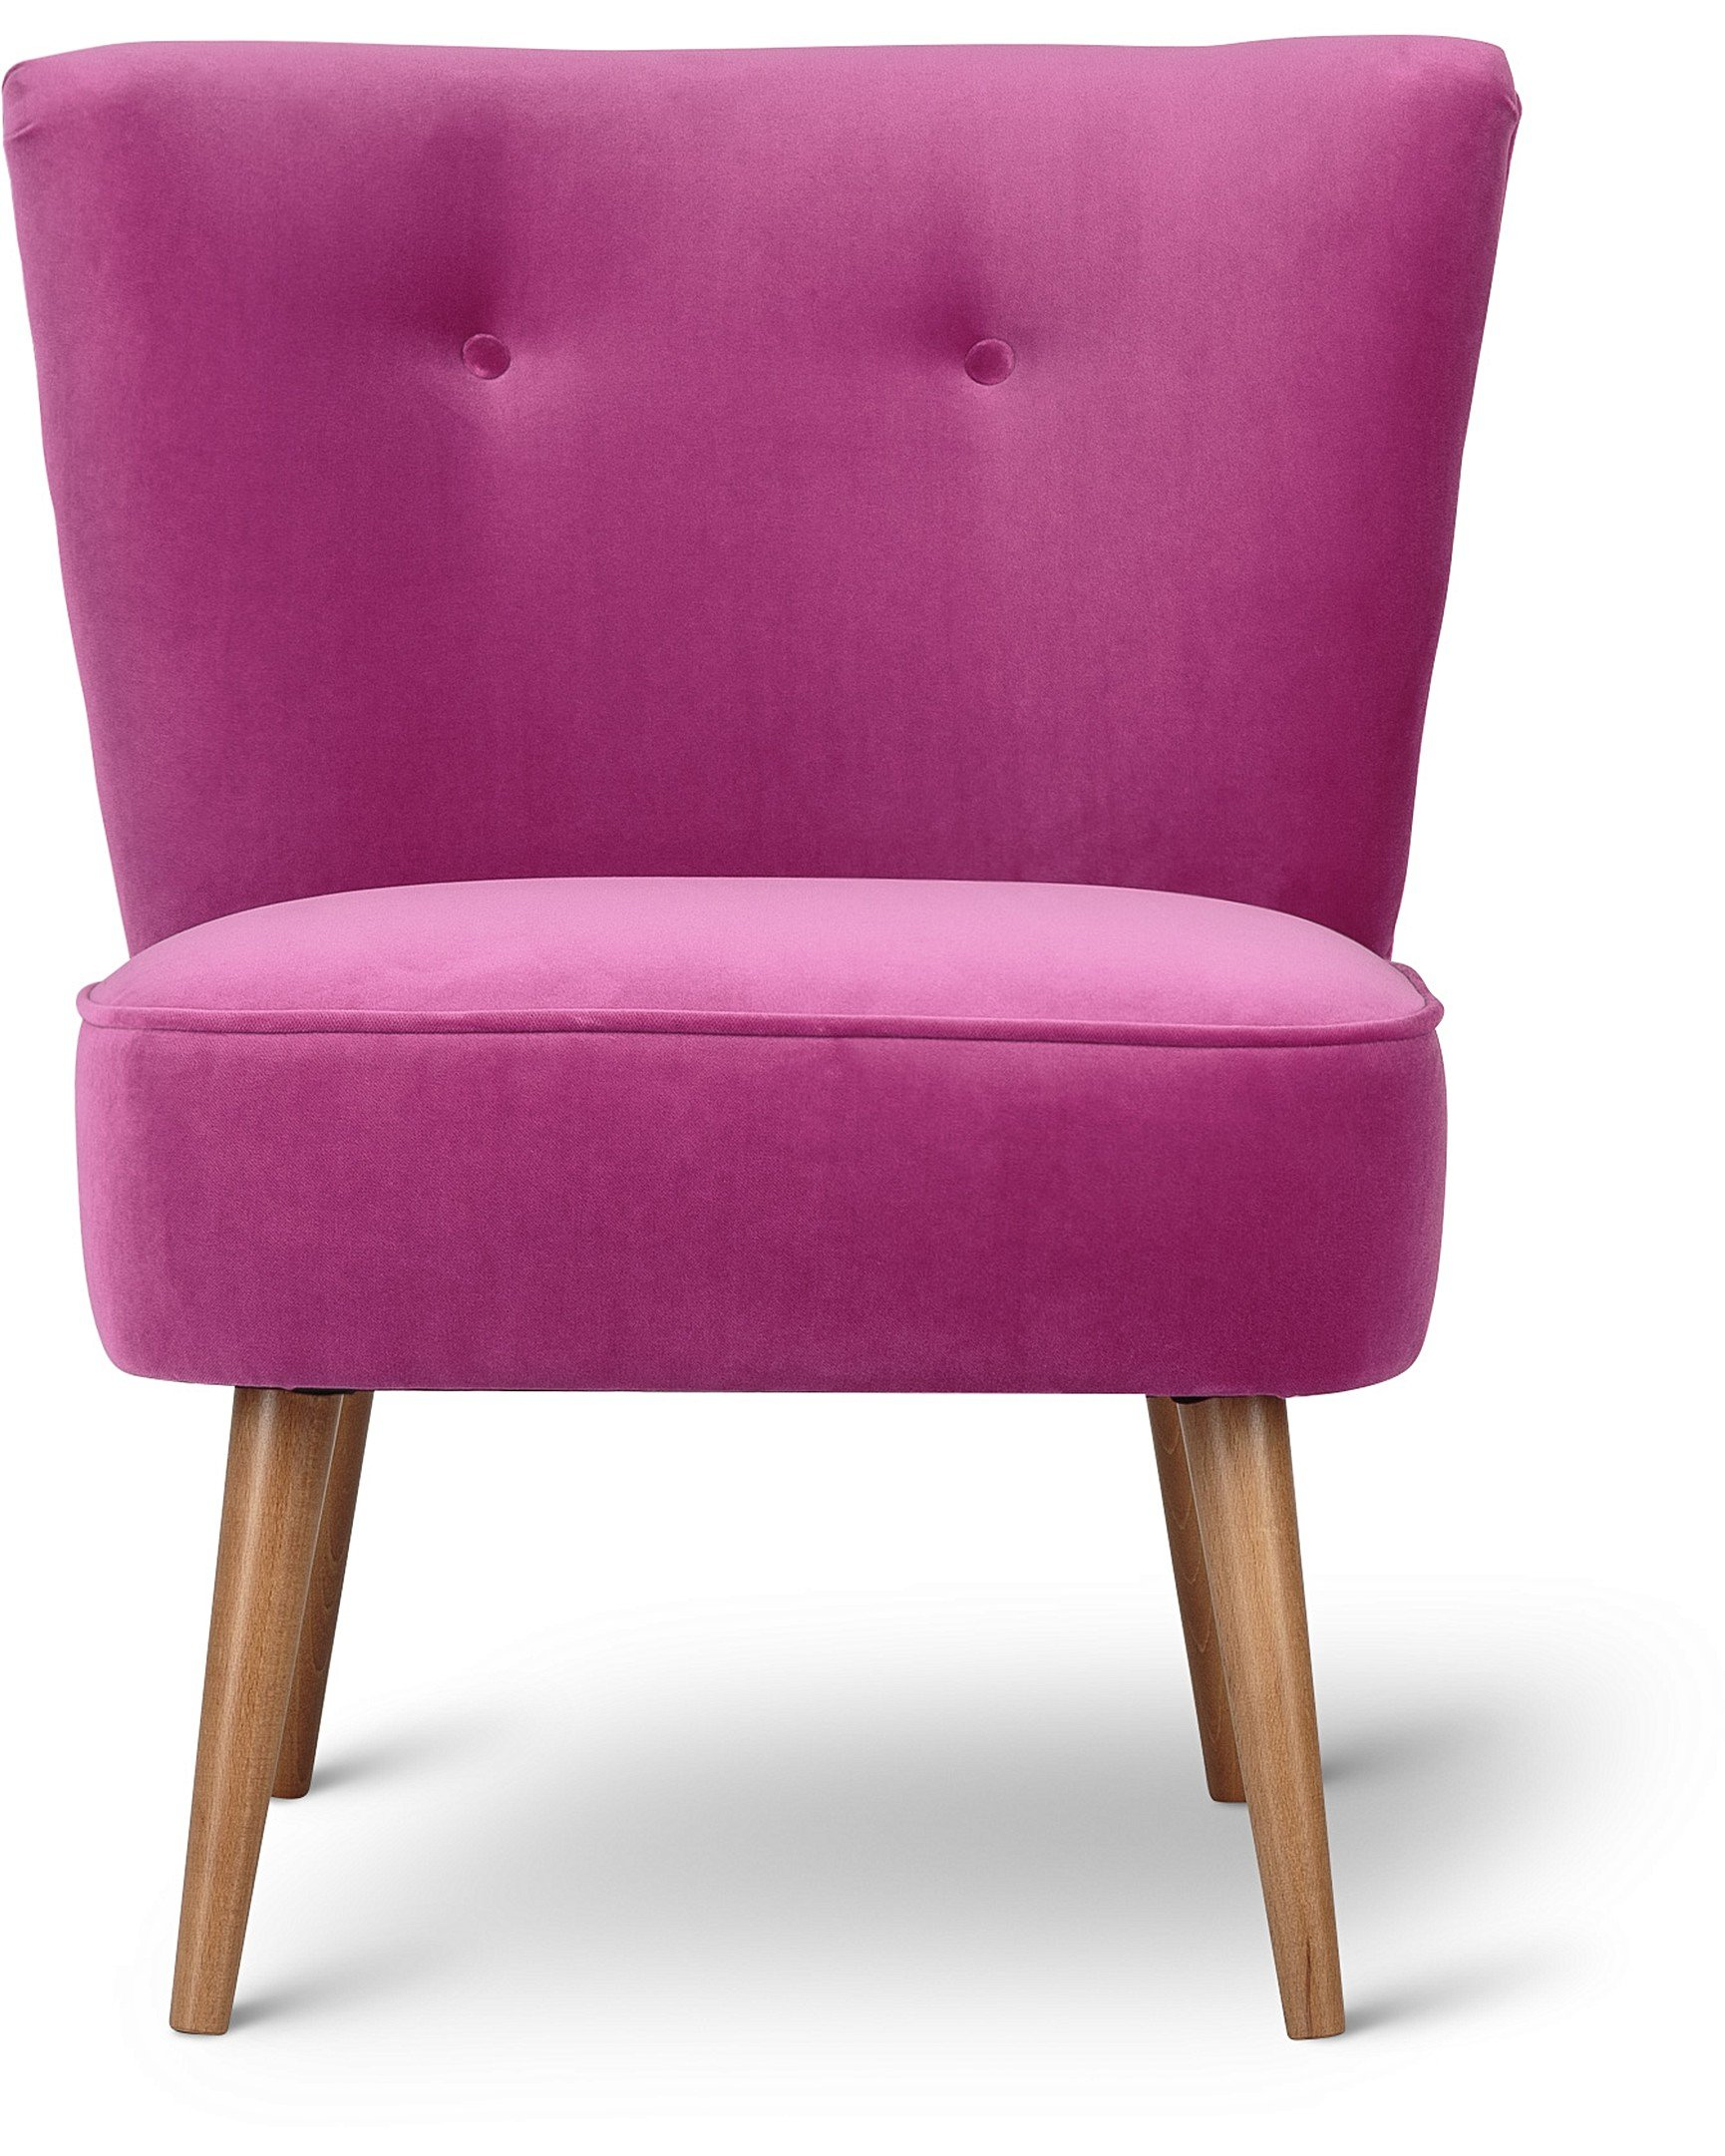 Armchairs & Chairs - Velvet Chairs   Oliver Bonas